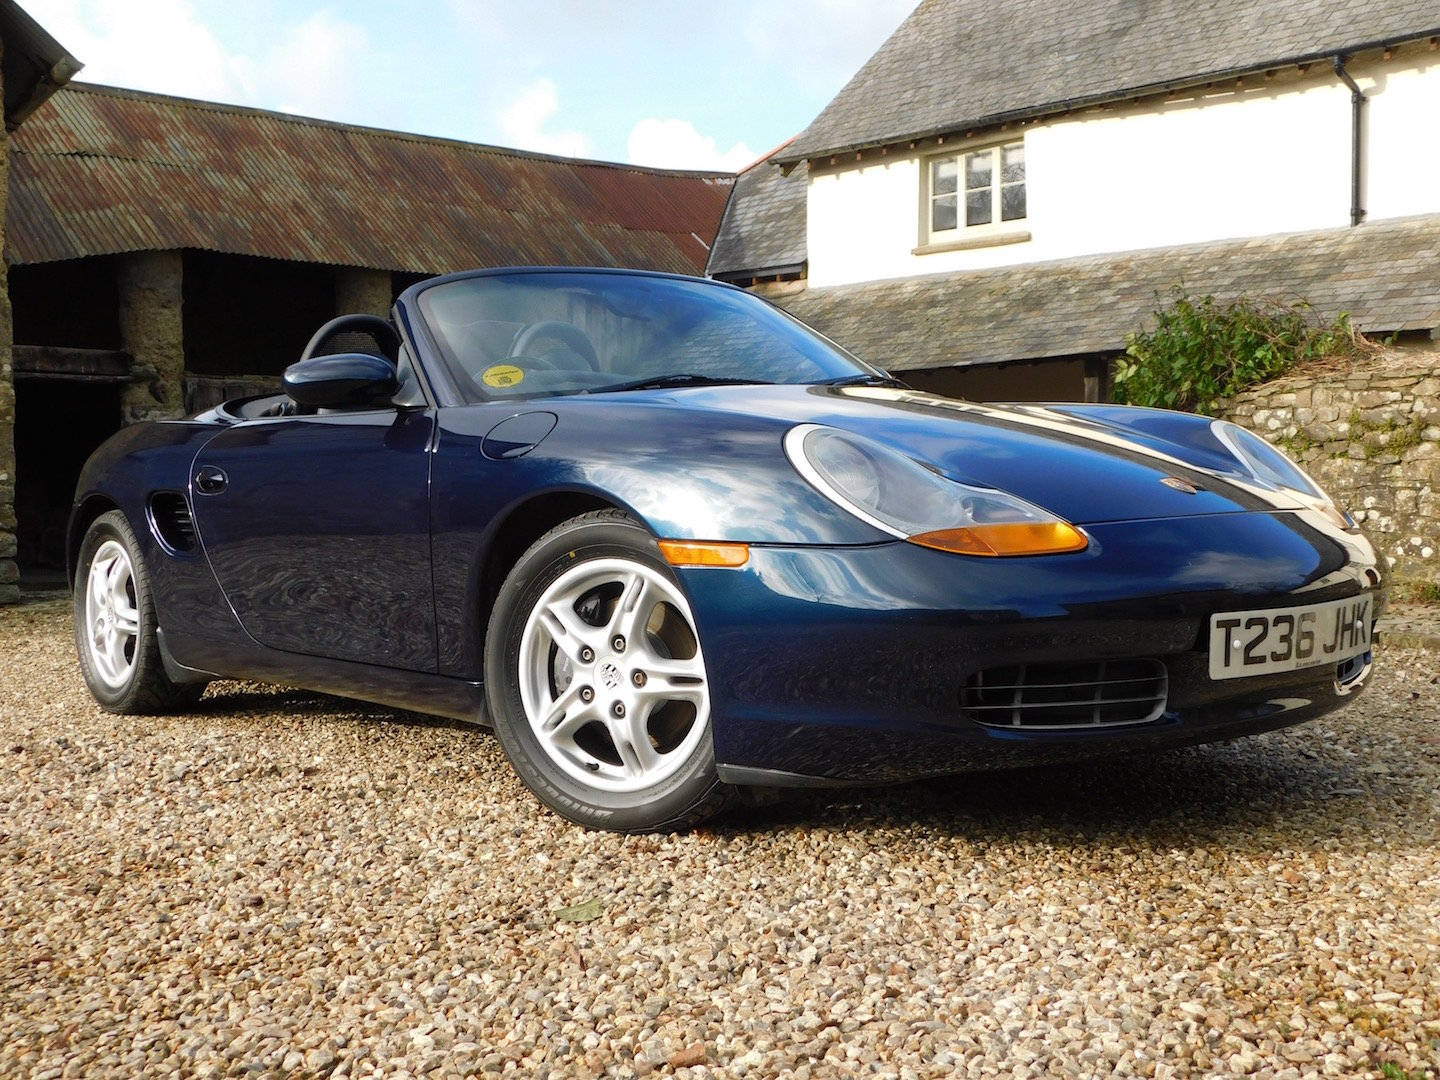 1999 Porsche 986 Boxster 2.5 - 44k miles, excellent throughout For Sale (picture 1 of 6)